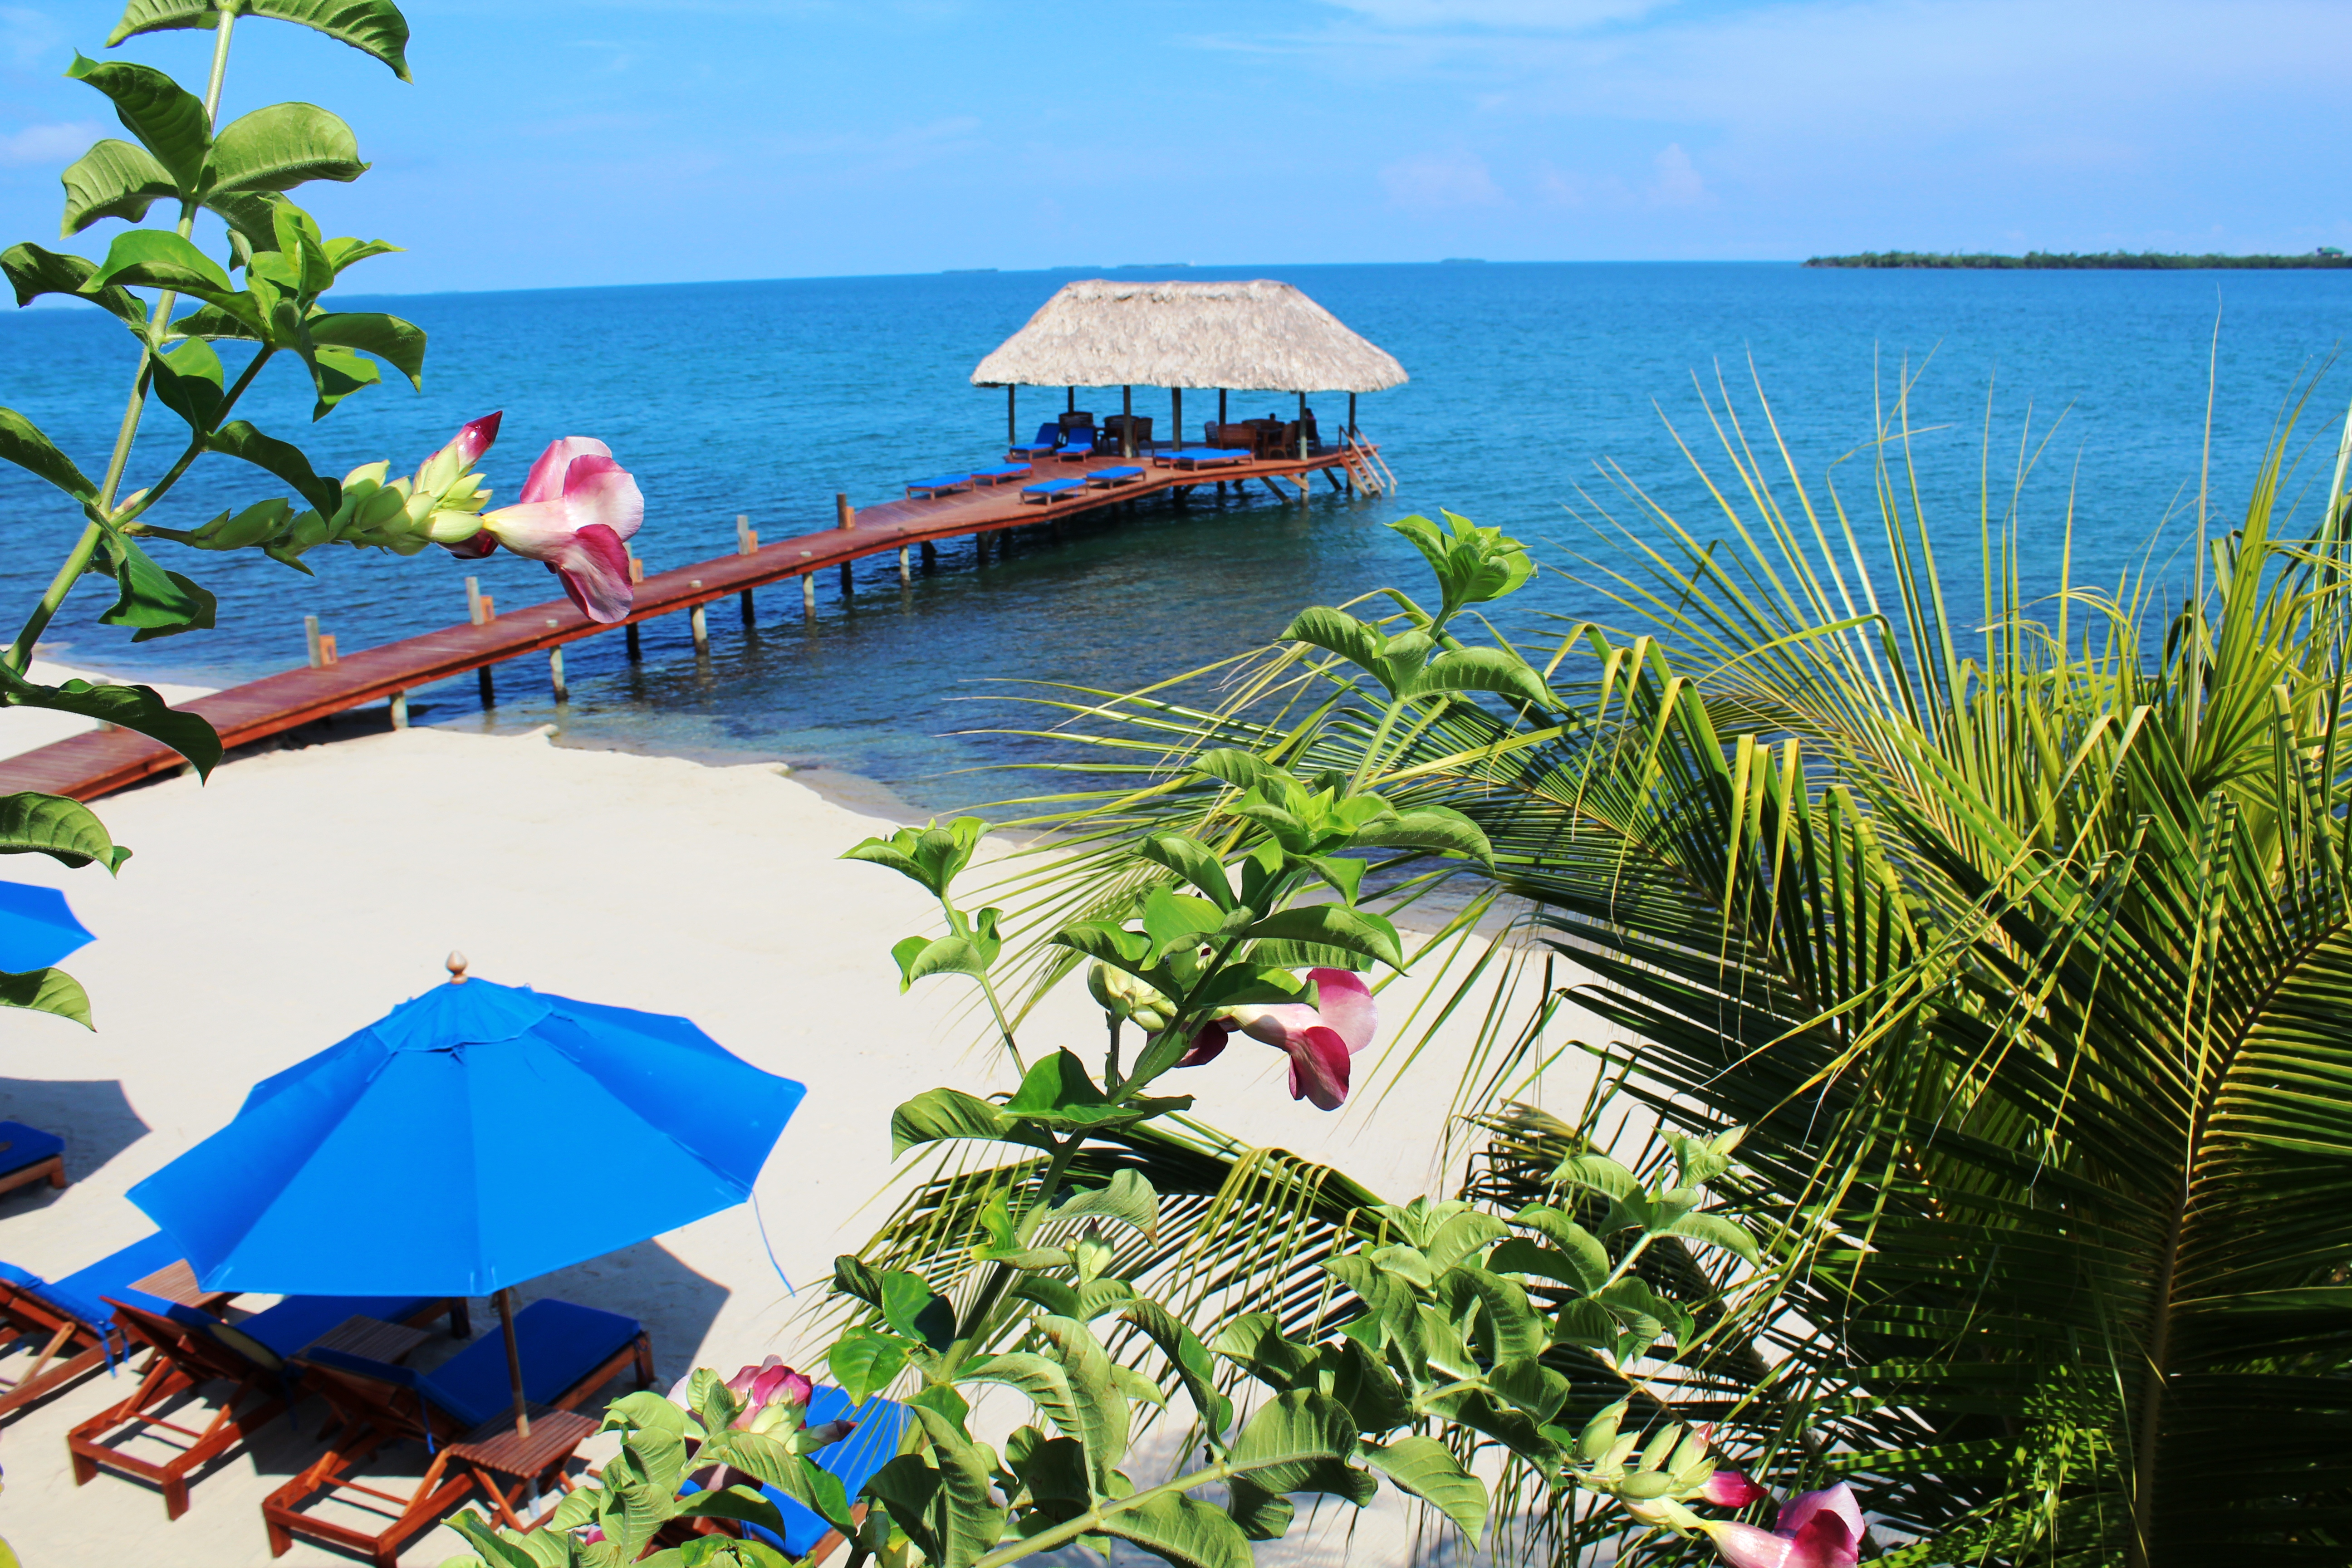 Pier with Flower Chabil Mar Resort Belize